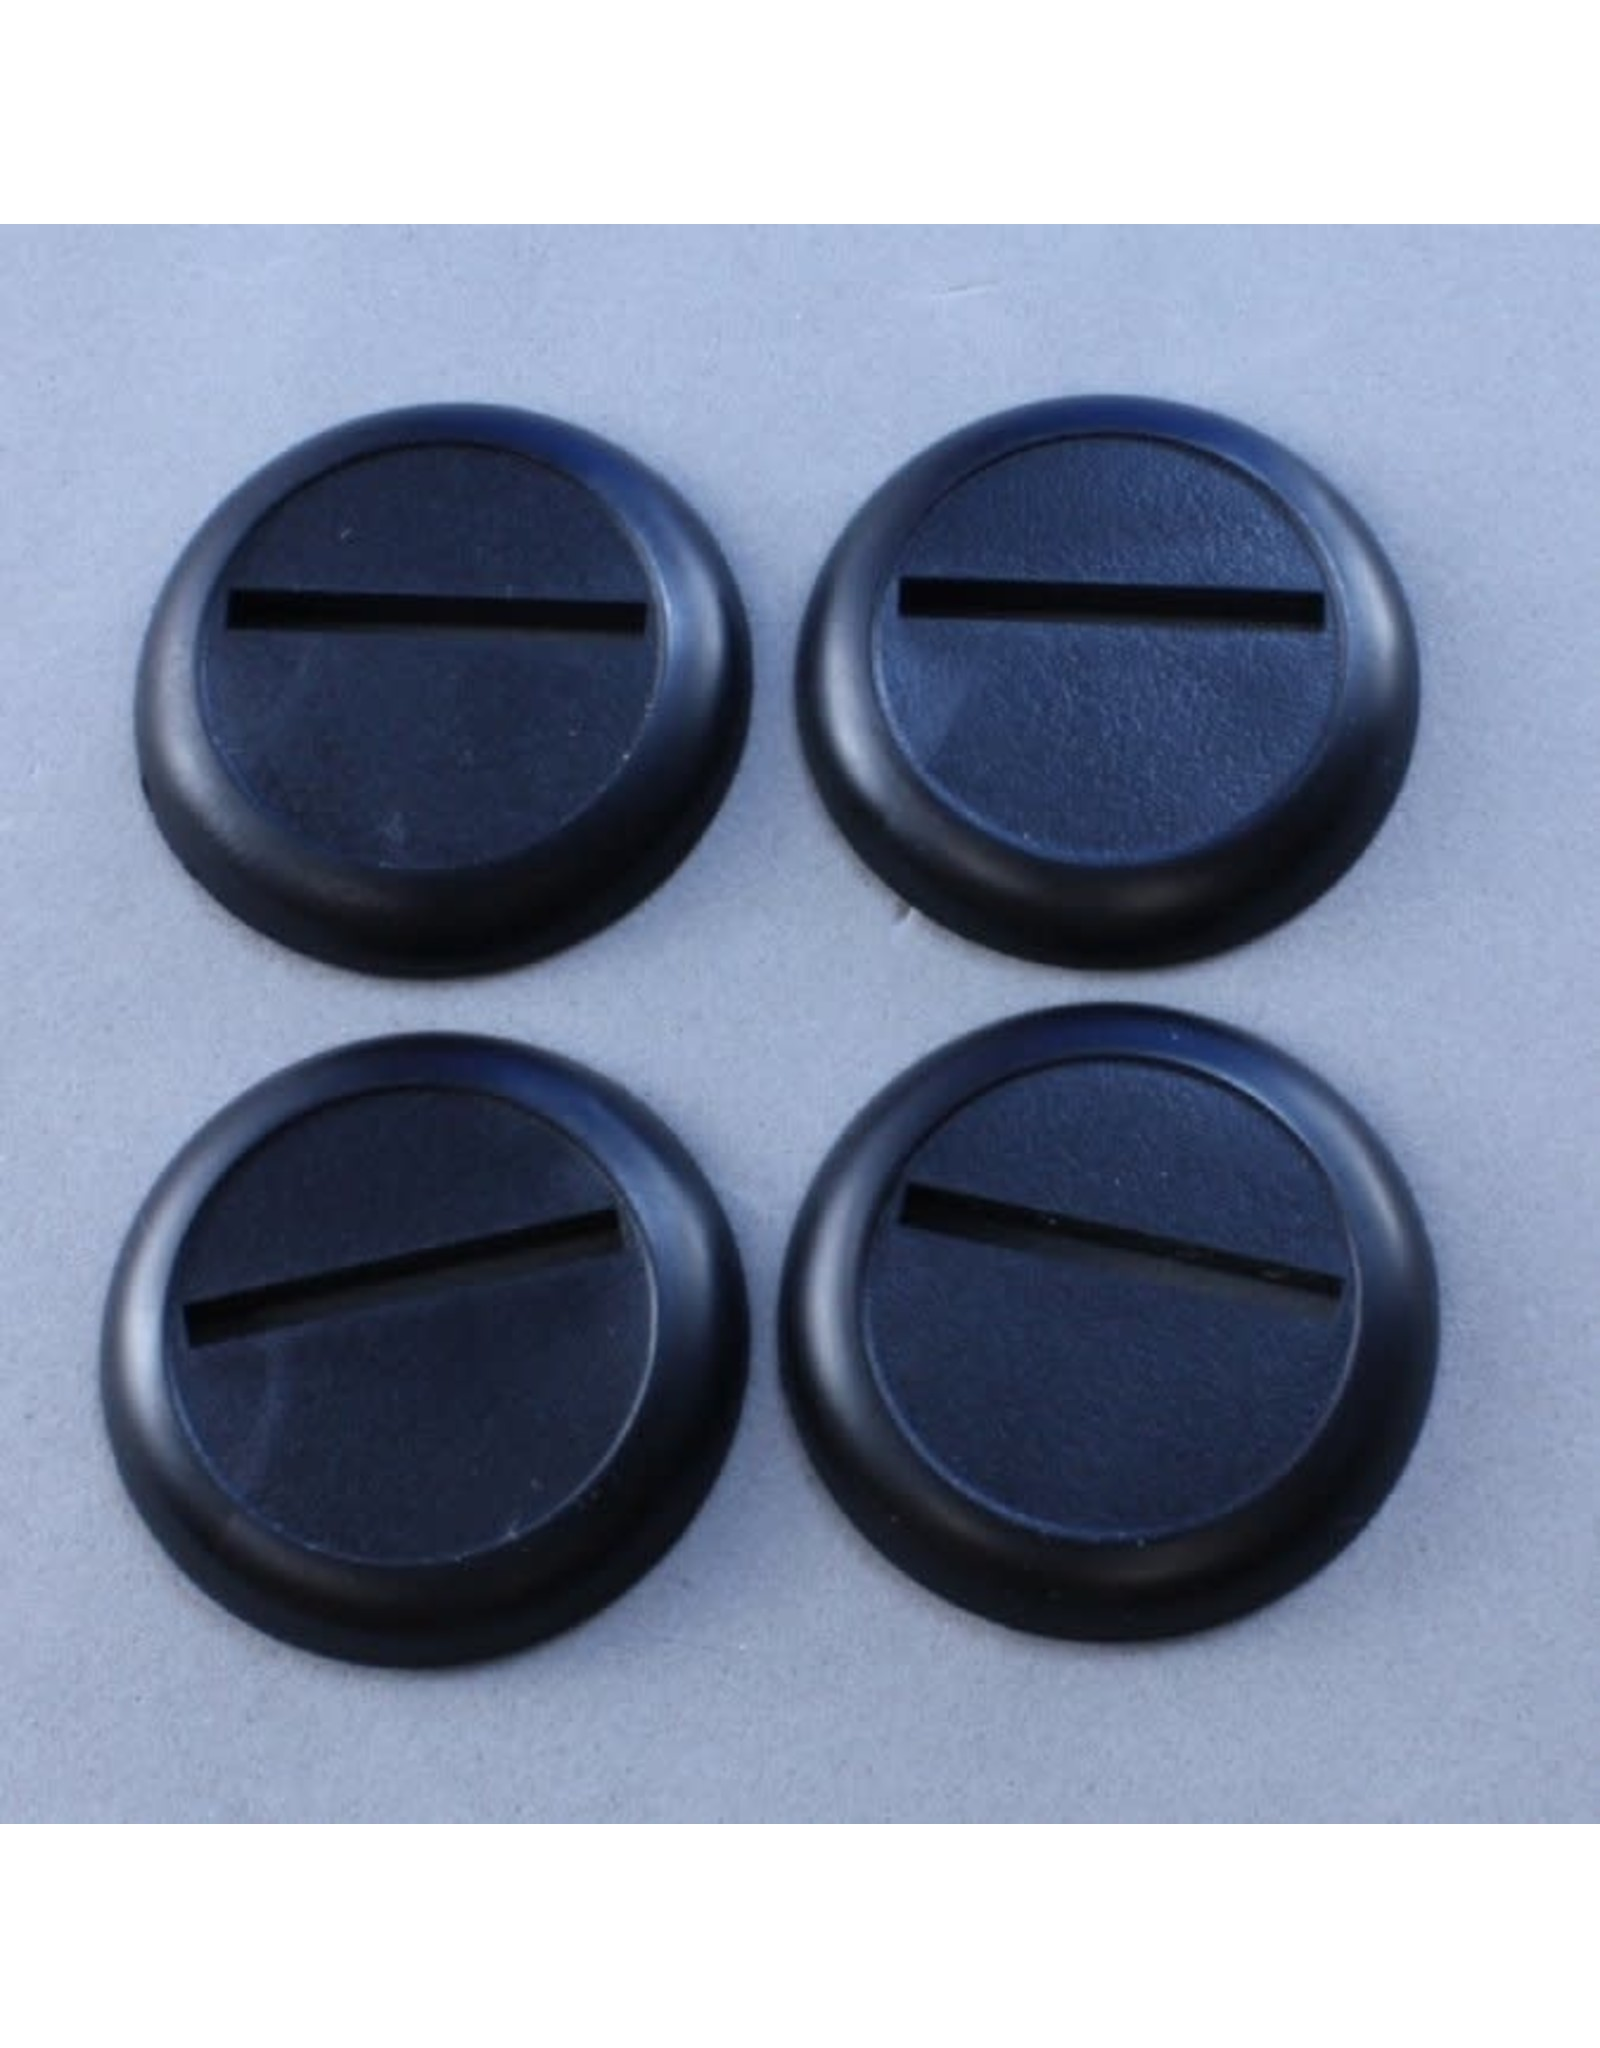 Reaper Miniatures 30mm Round Plastic Bases